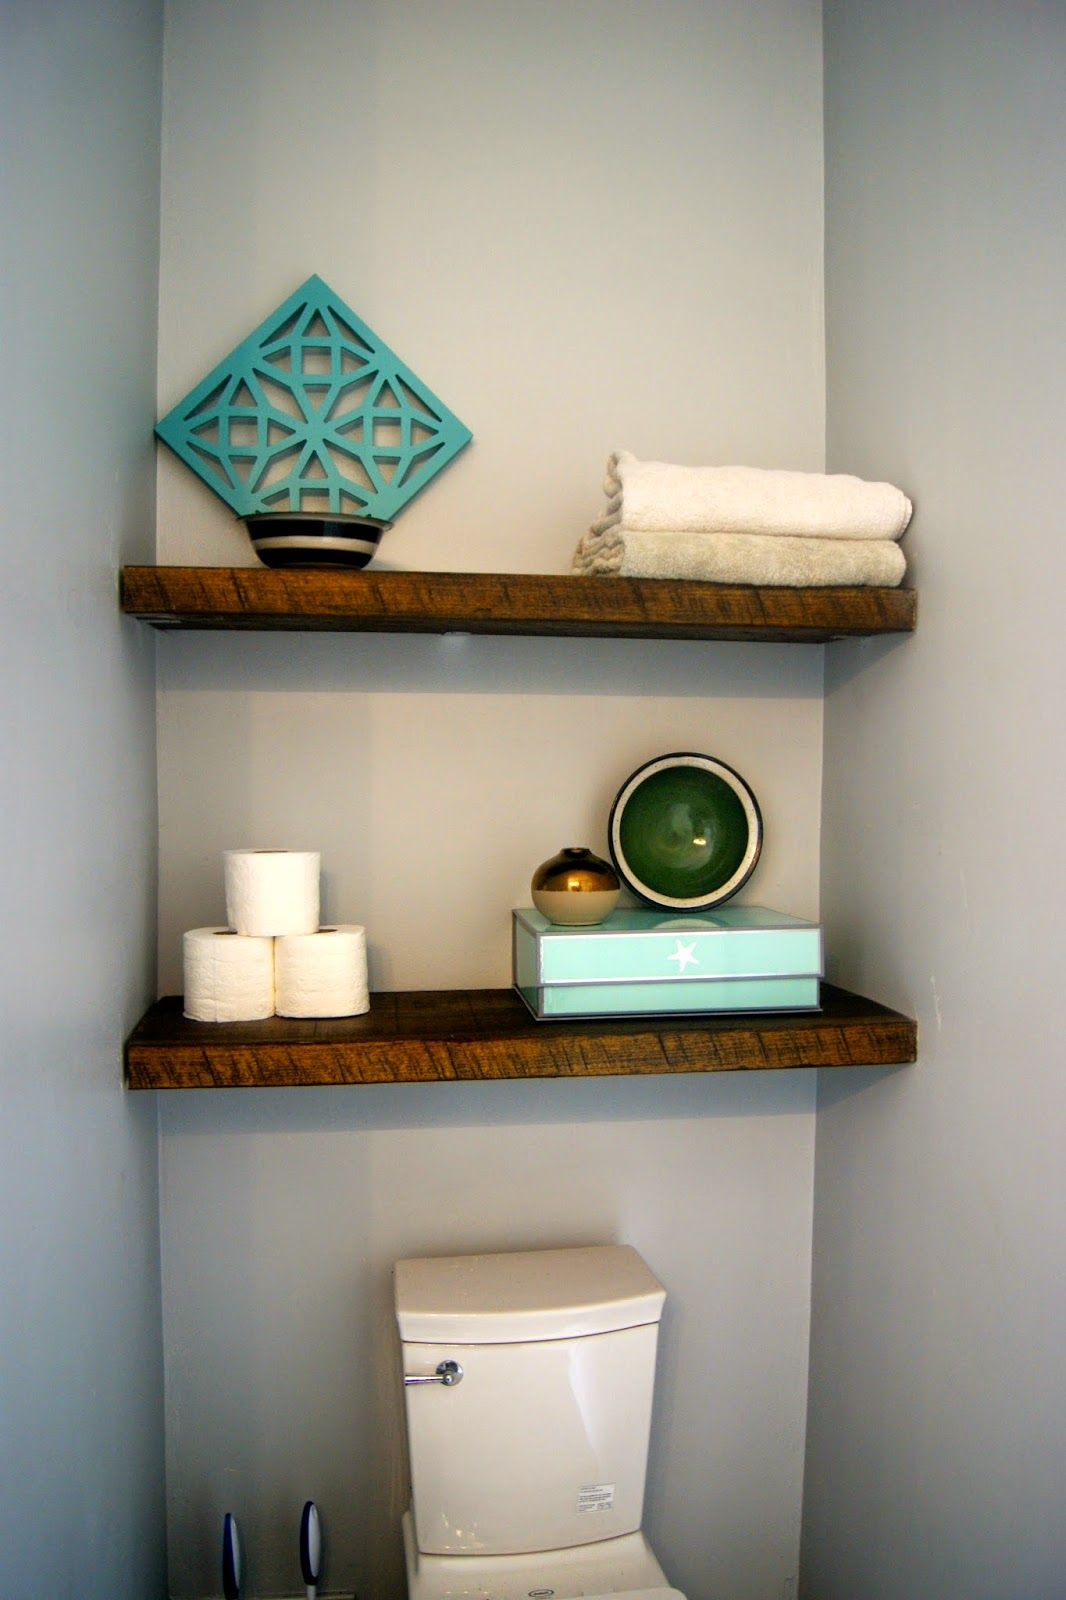 Floating Shelves Above the Toilet (use small L brackets